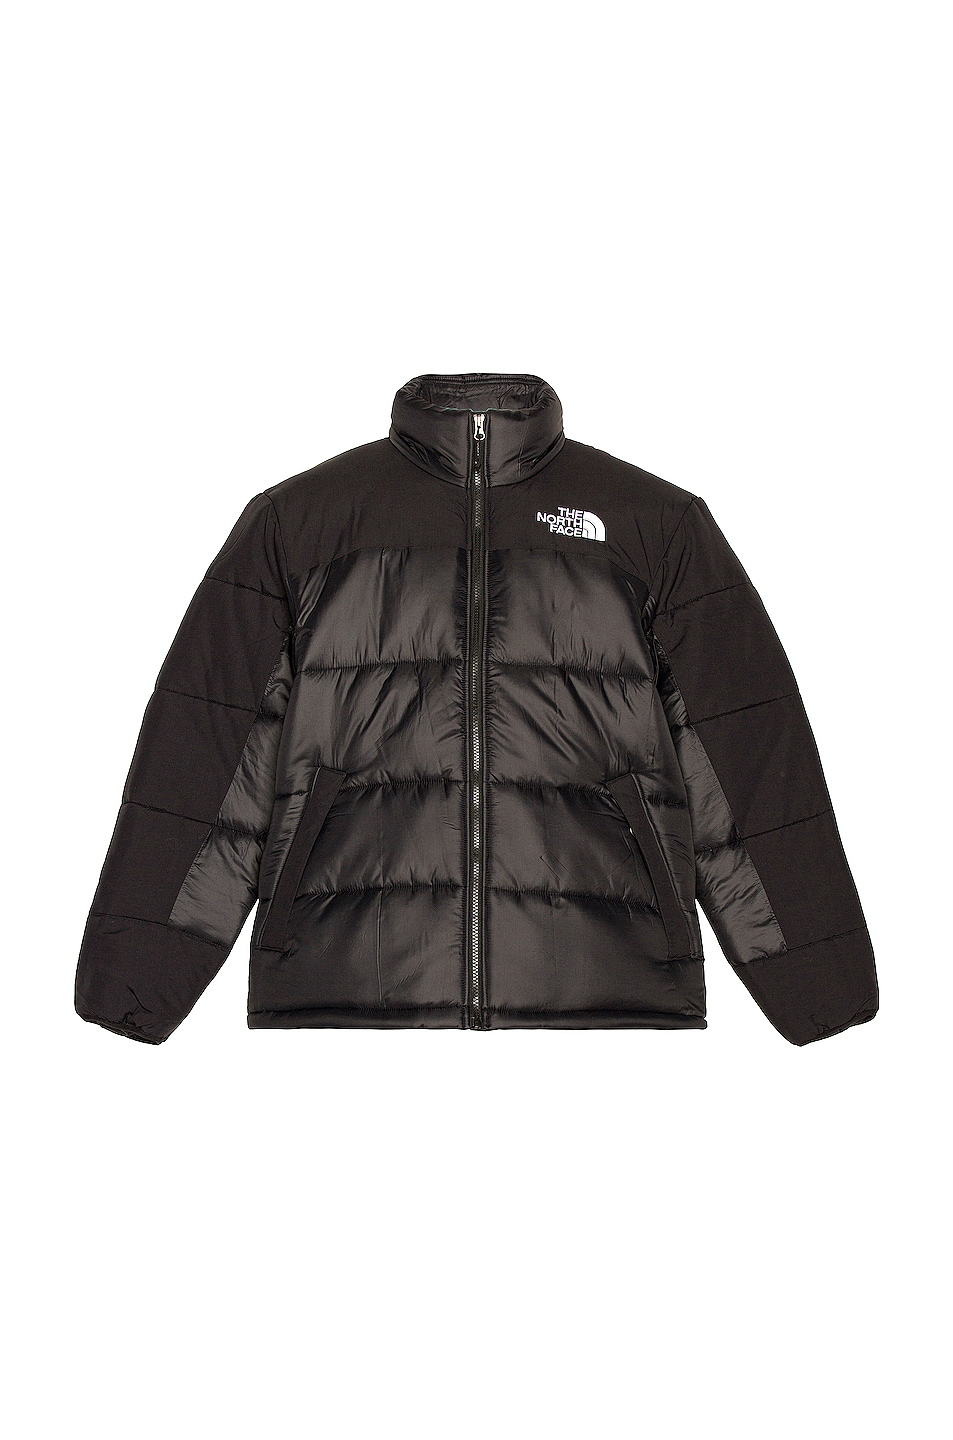 Image 1 of The North Face HMLYN Insulated Jacket in TNF Black